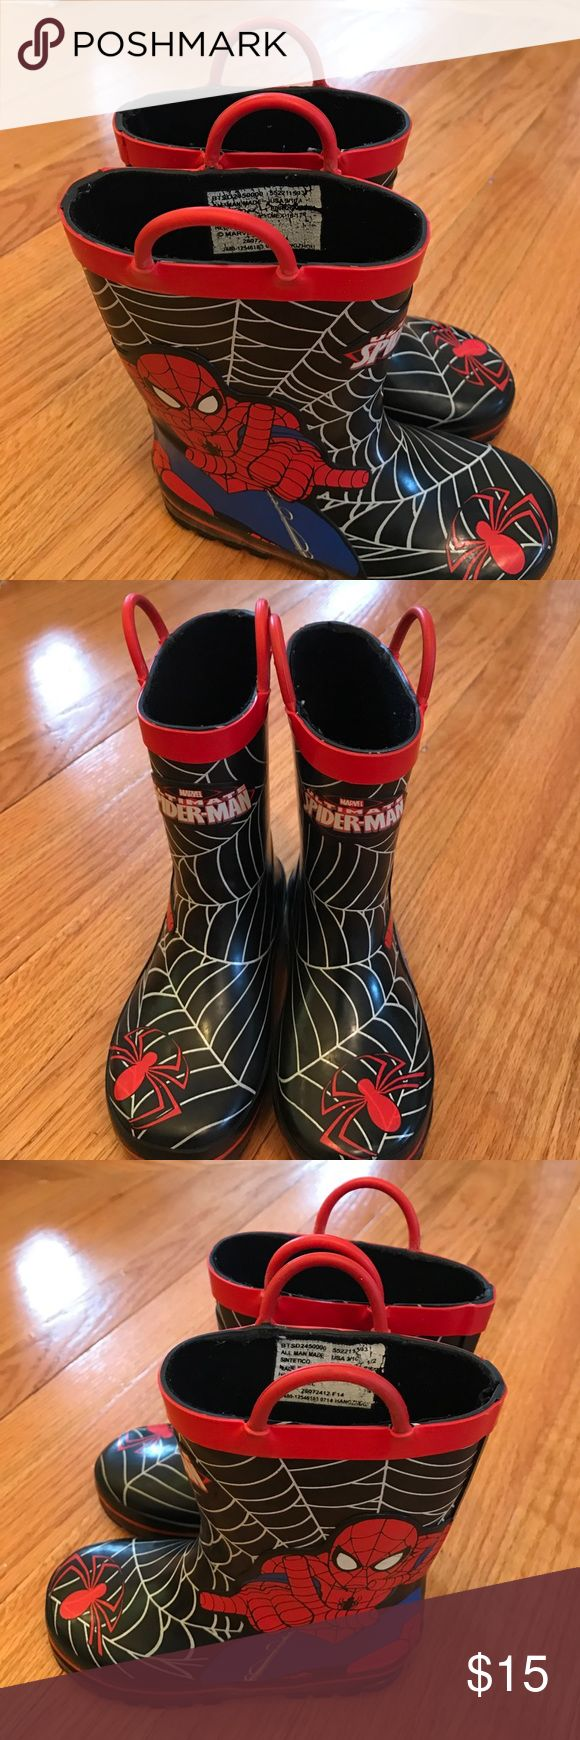 Selling this Boy's Spider Man Rain Boots Size 9/10 Toddler on Poshmark! My username is: volley4kix. #shopmycloset #poshmark #fashion #shopping #style #forsale #Marvel #Other